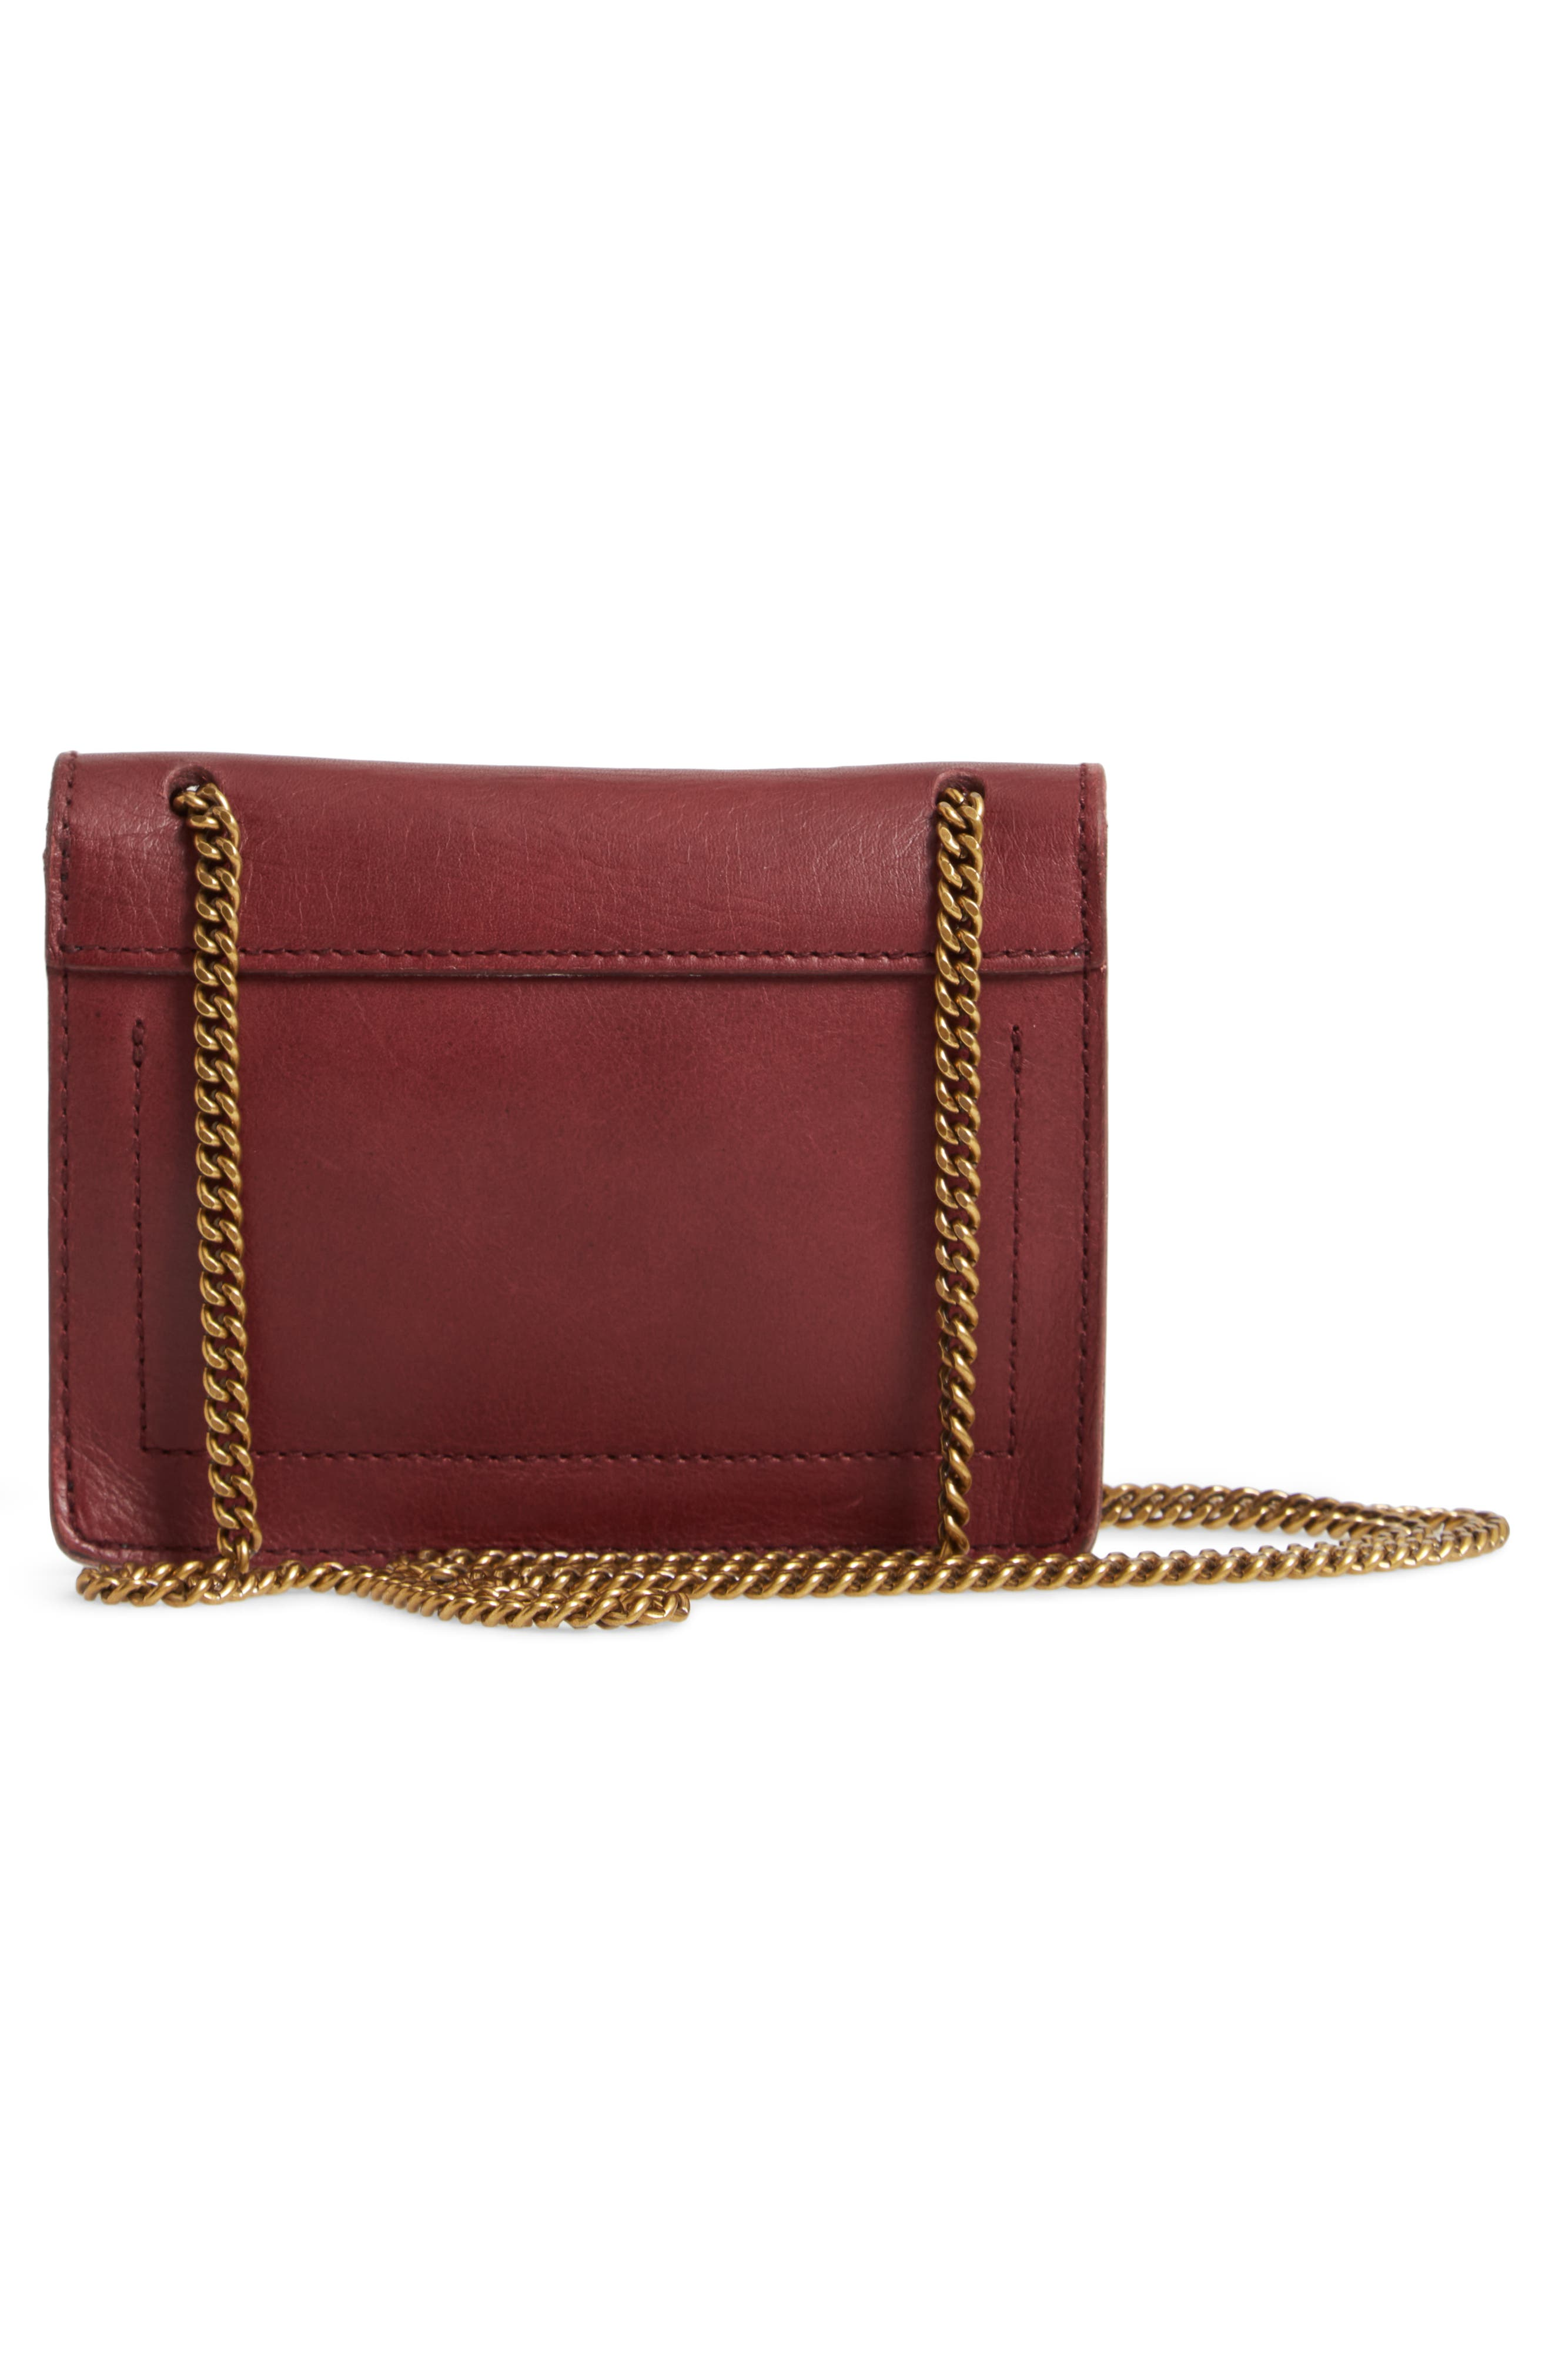 MADEWELL,                             Leather Crossbody Wallet,                             Alternate thumbnail 3, color,                             DARK CABERNET